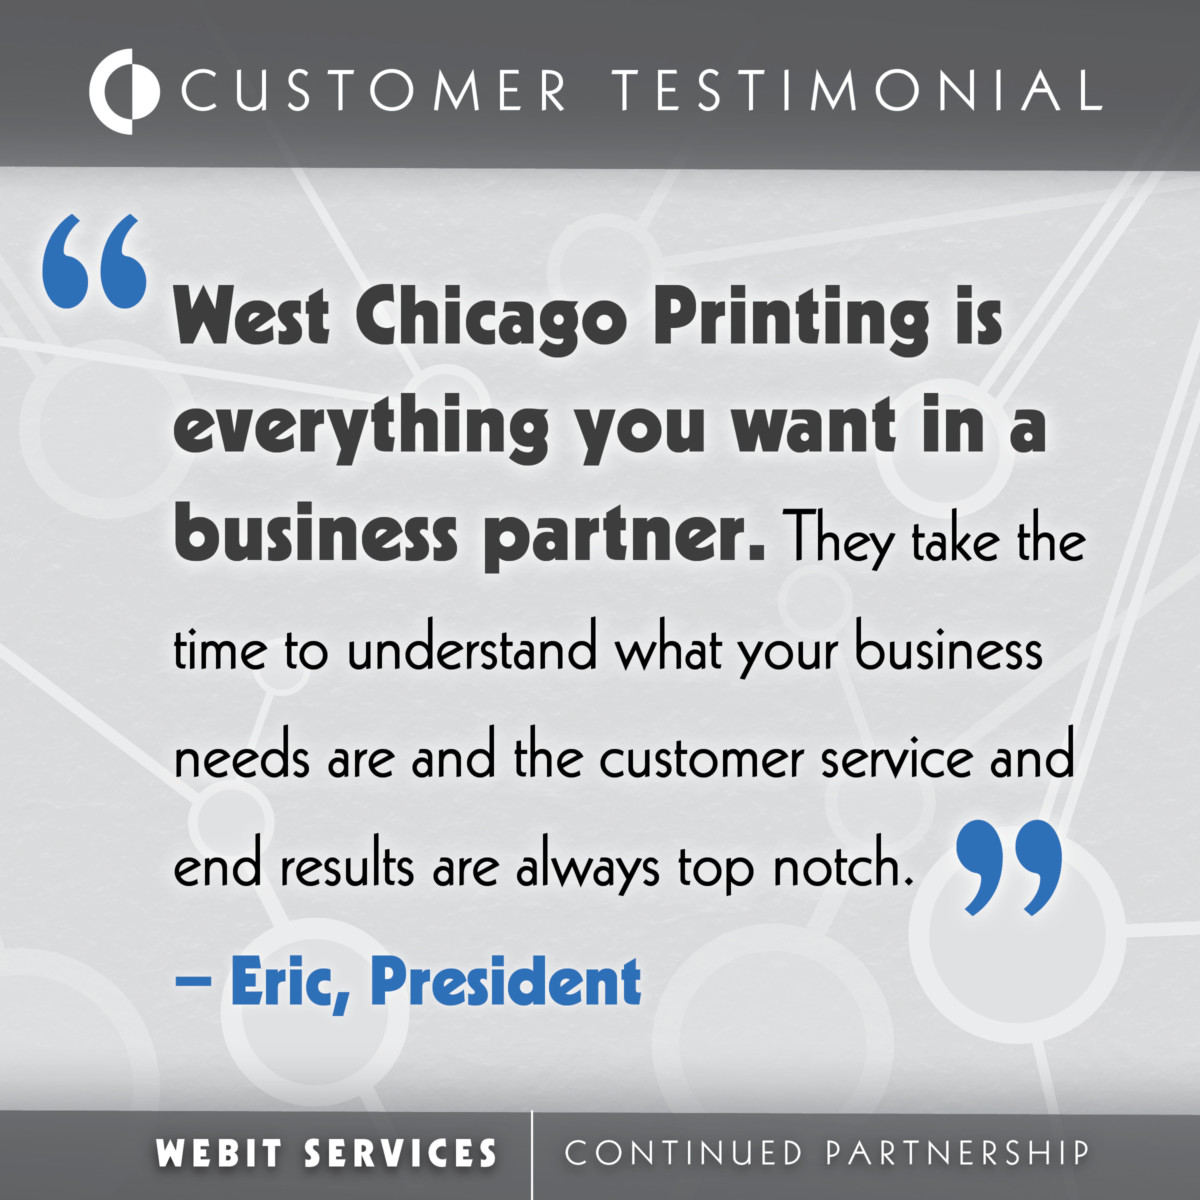 Webit Customer Spotlight 3 Testimonial